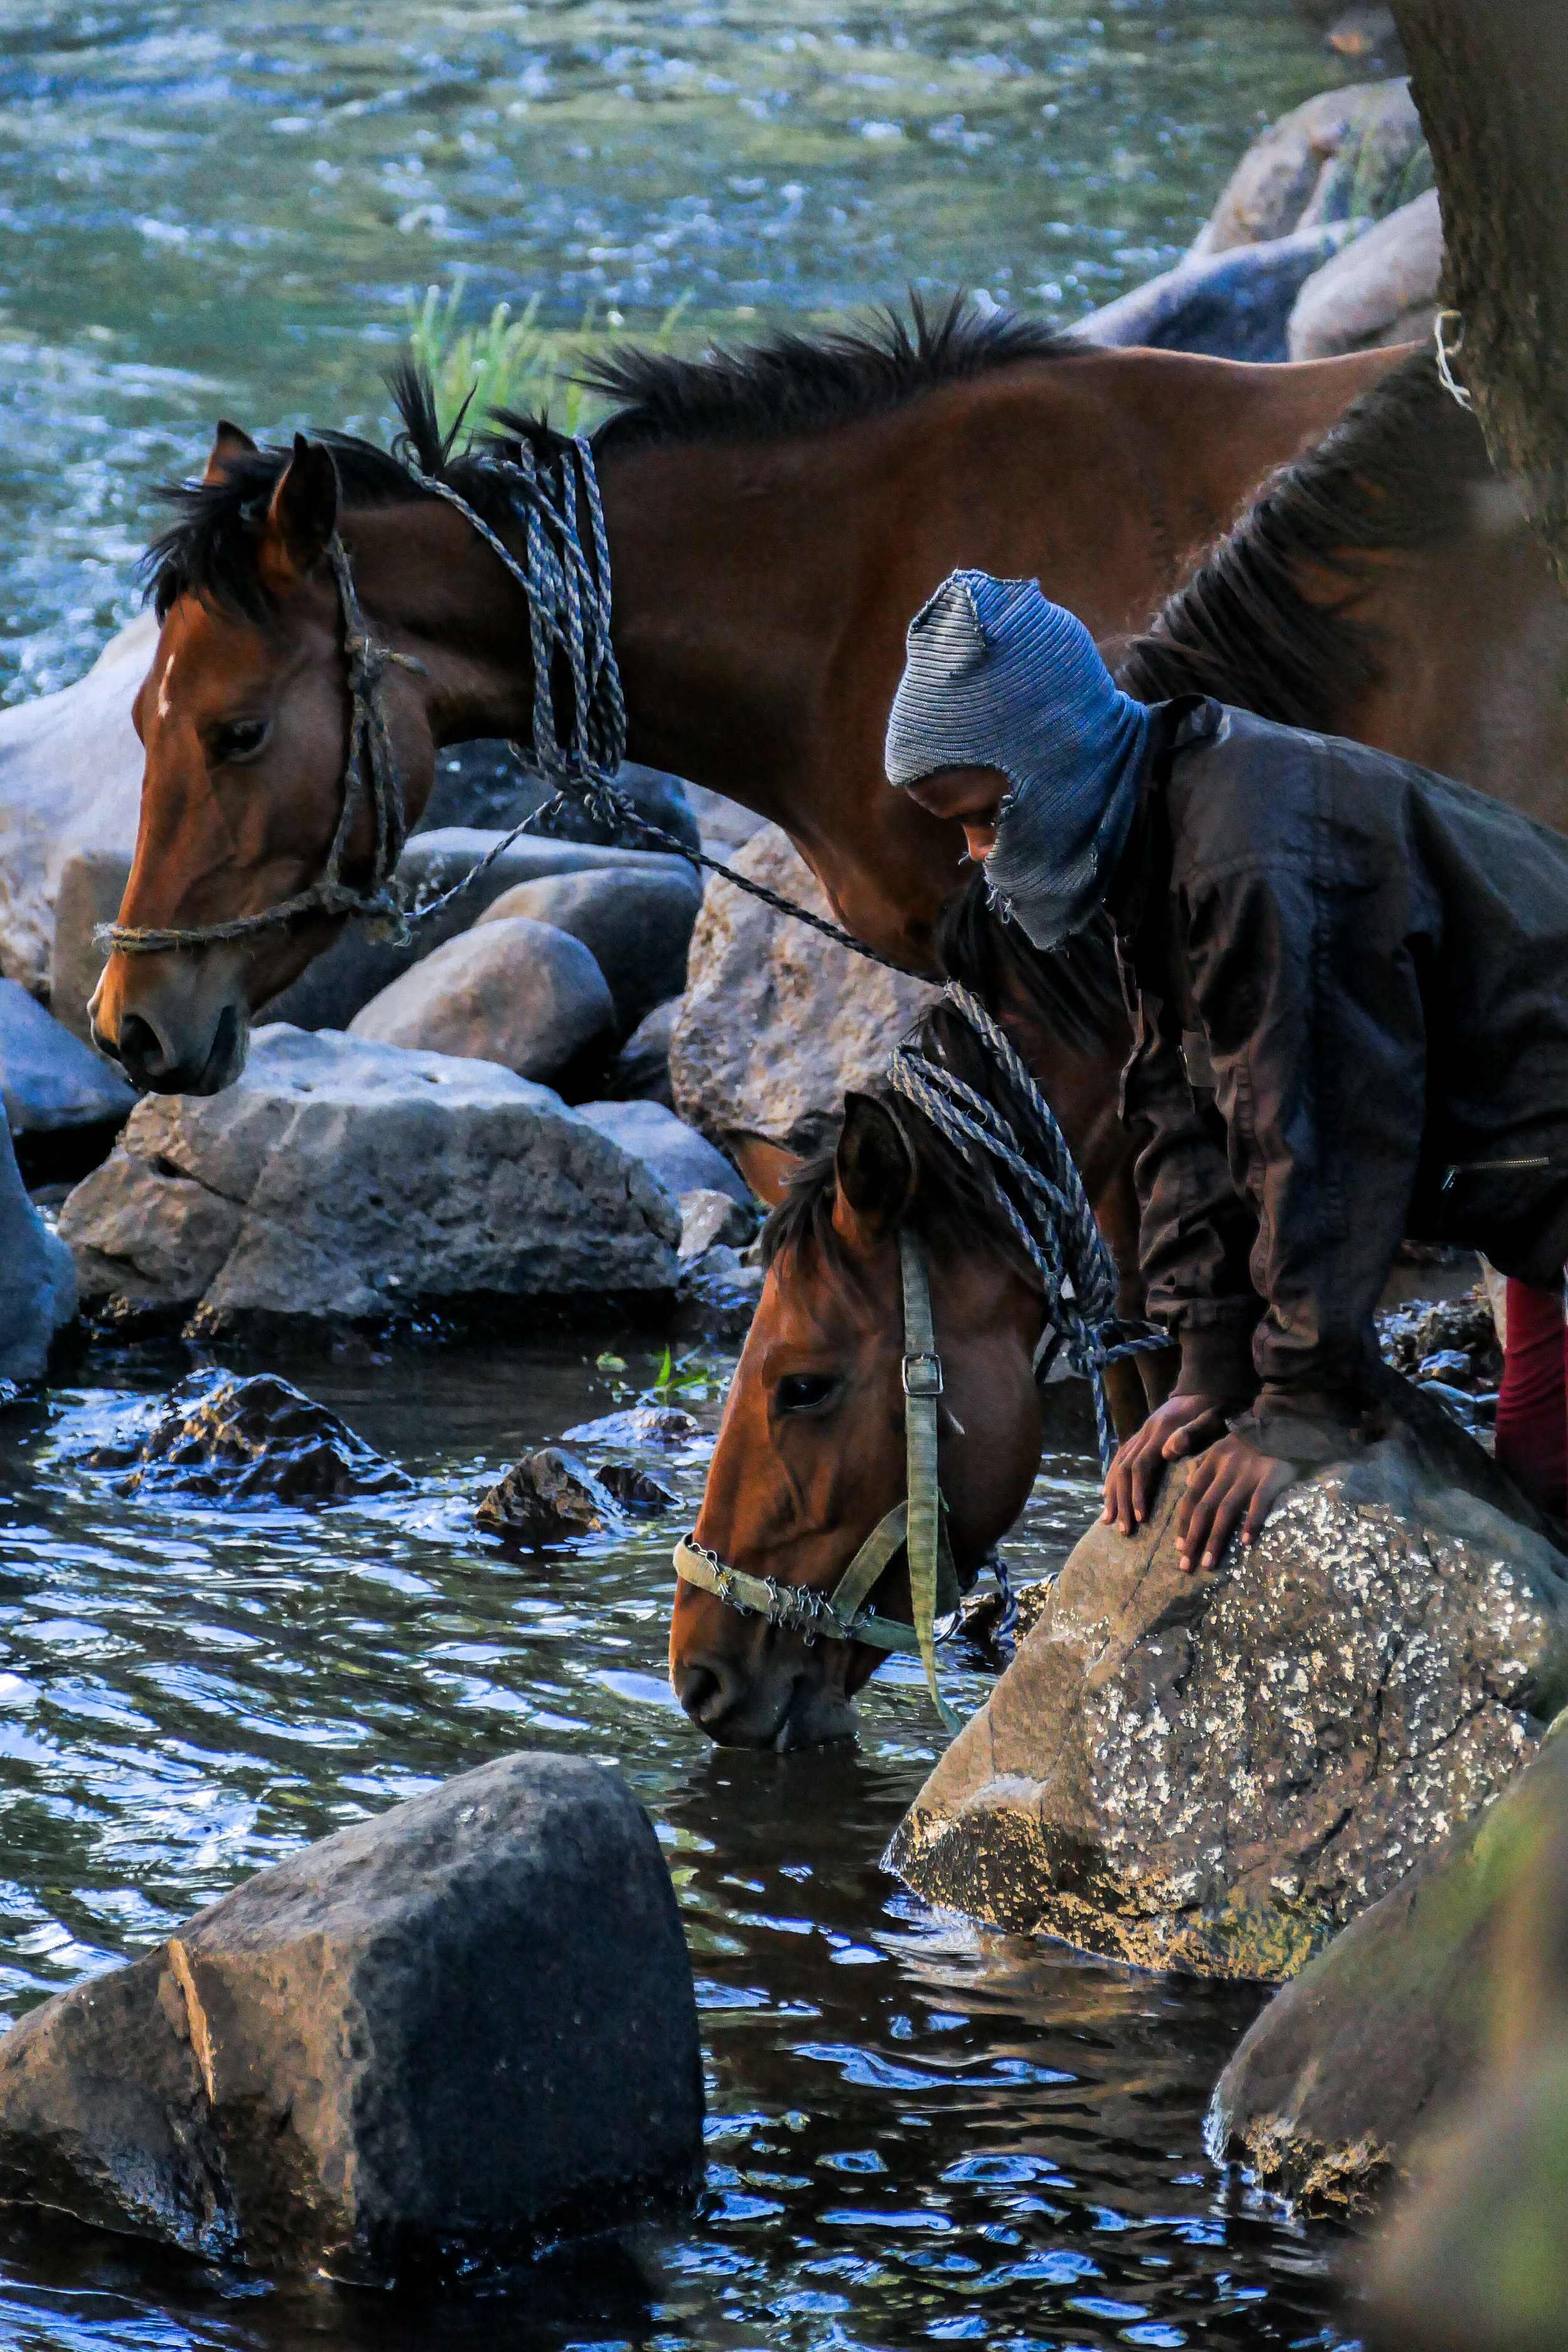 Basotho Shepherd boy takes his horses for some water in Semonkong River in Lesotho